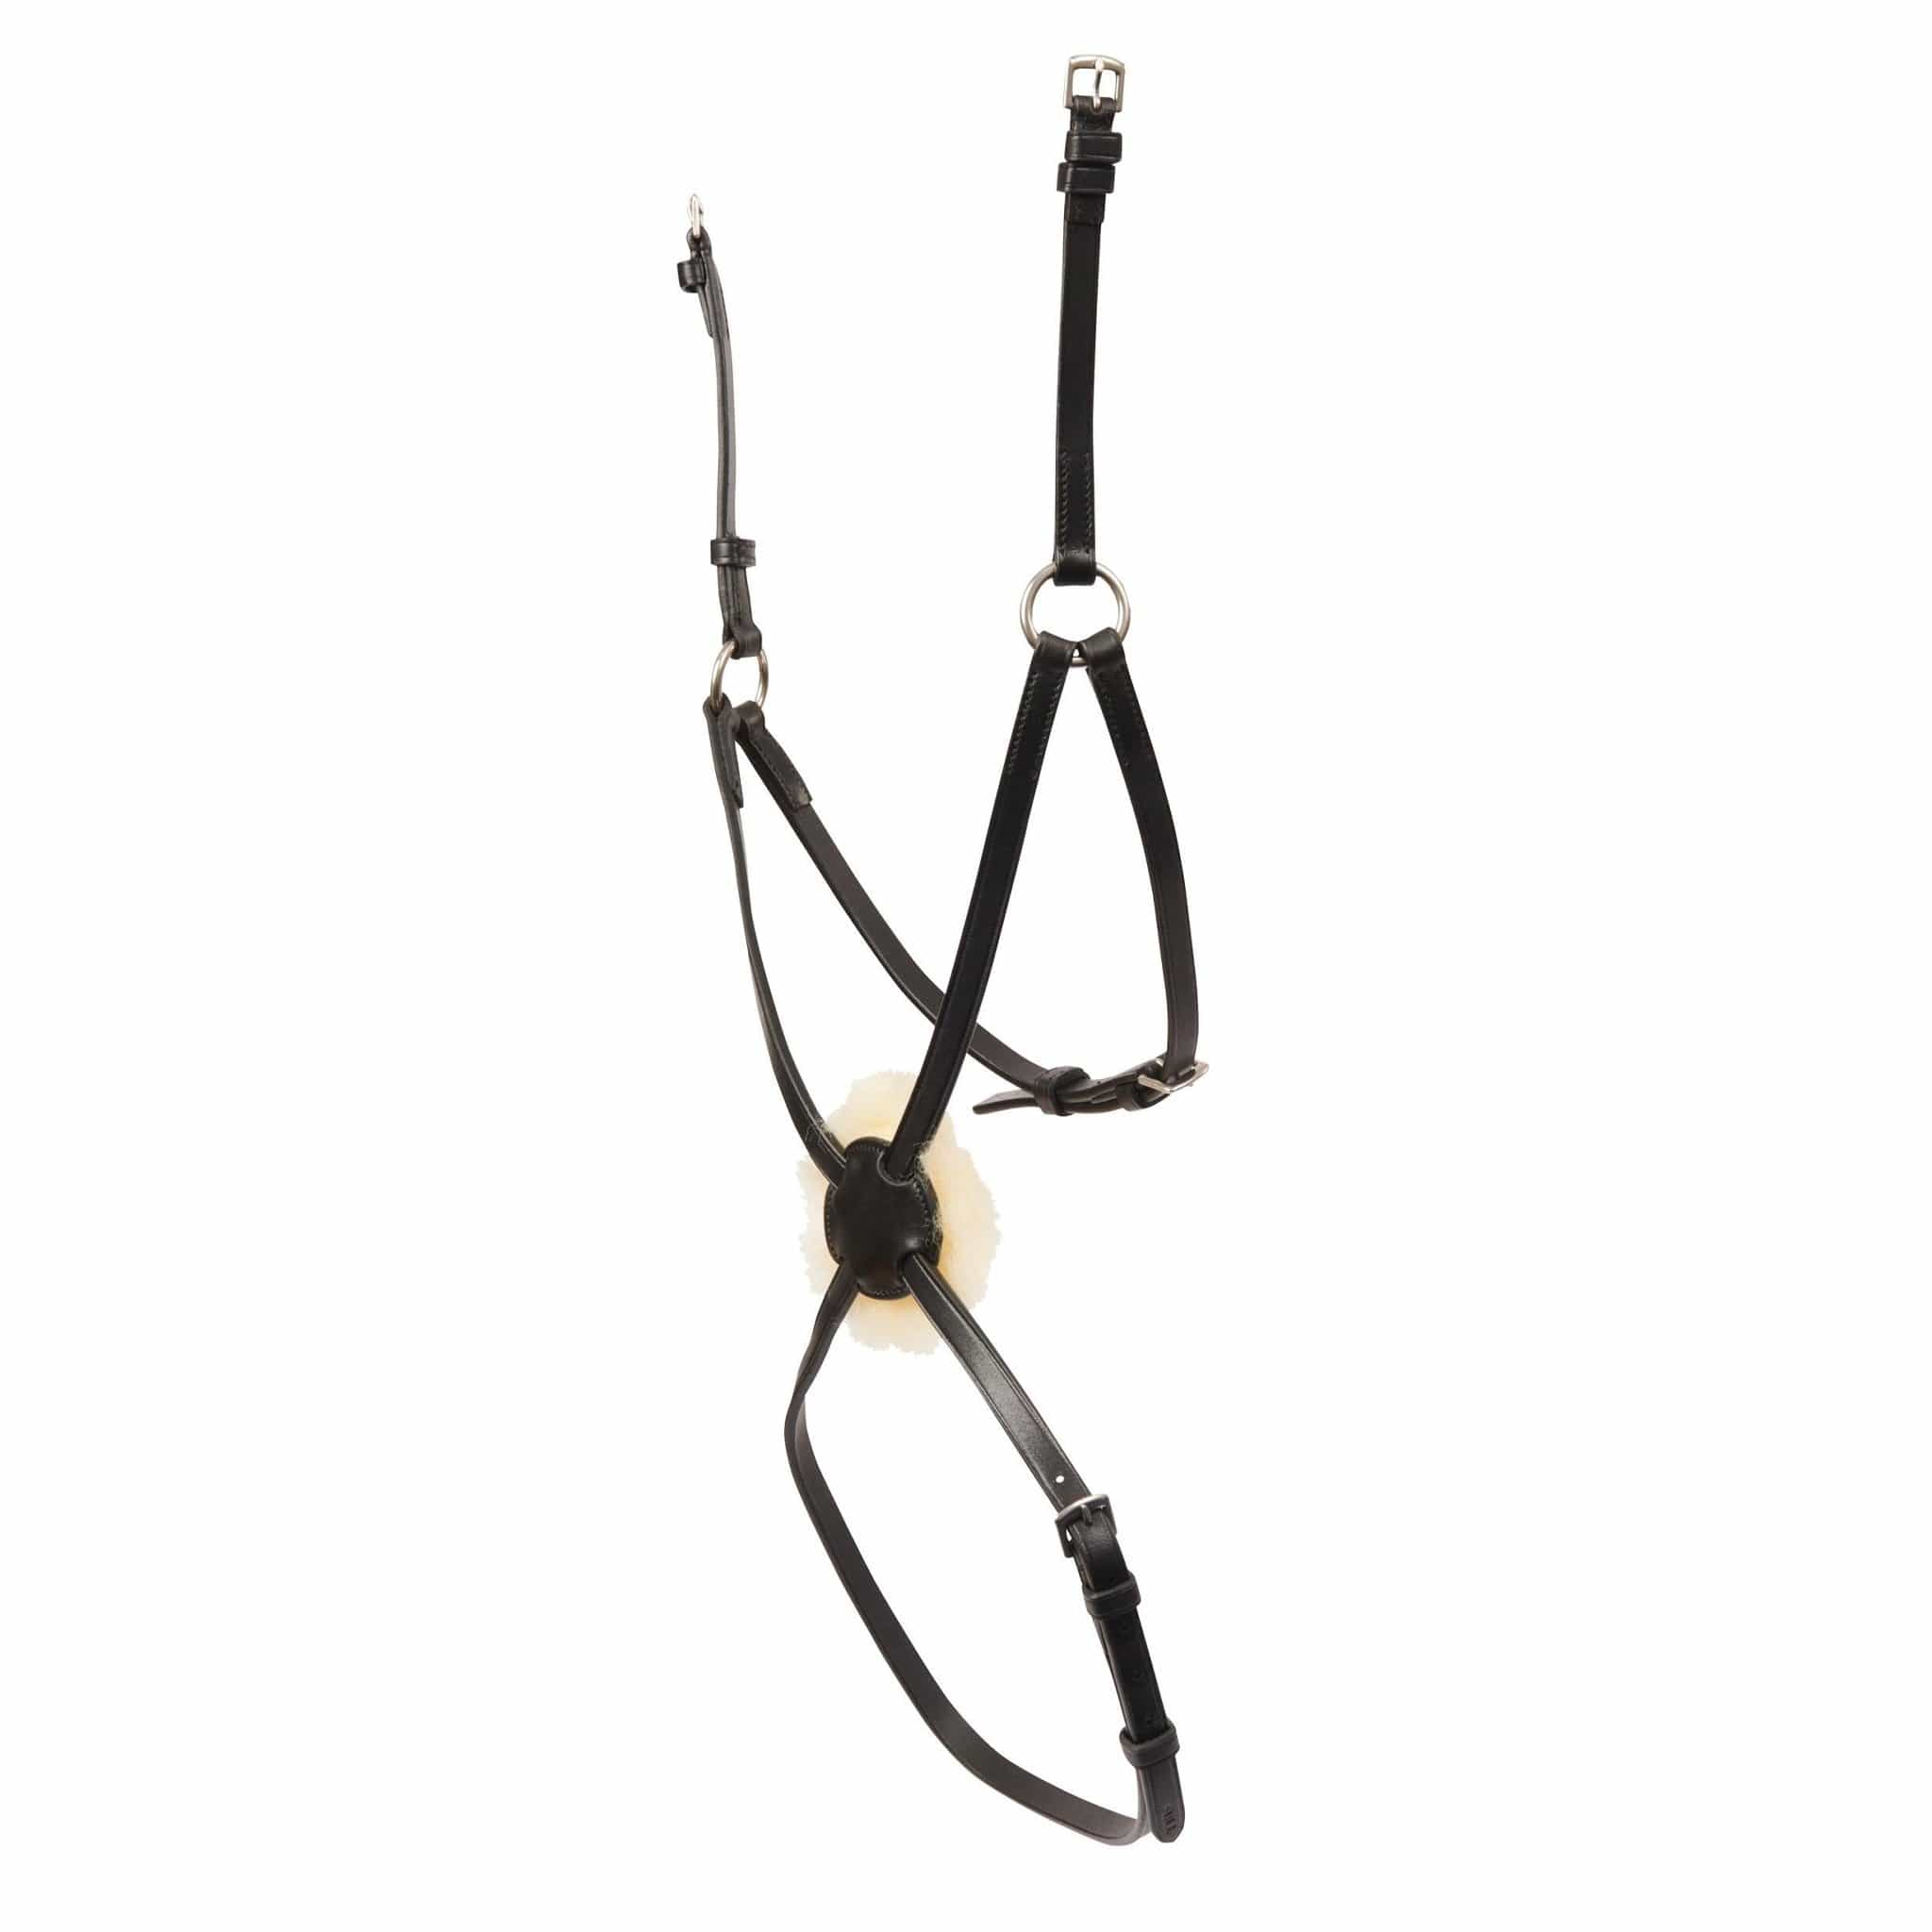 Collegiate Mono Crown Grackle Noseband Black 811756.